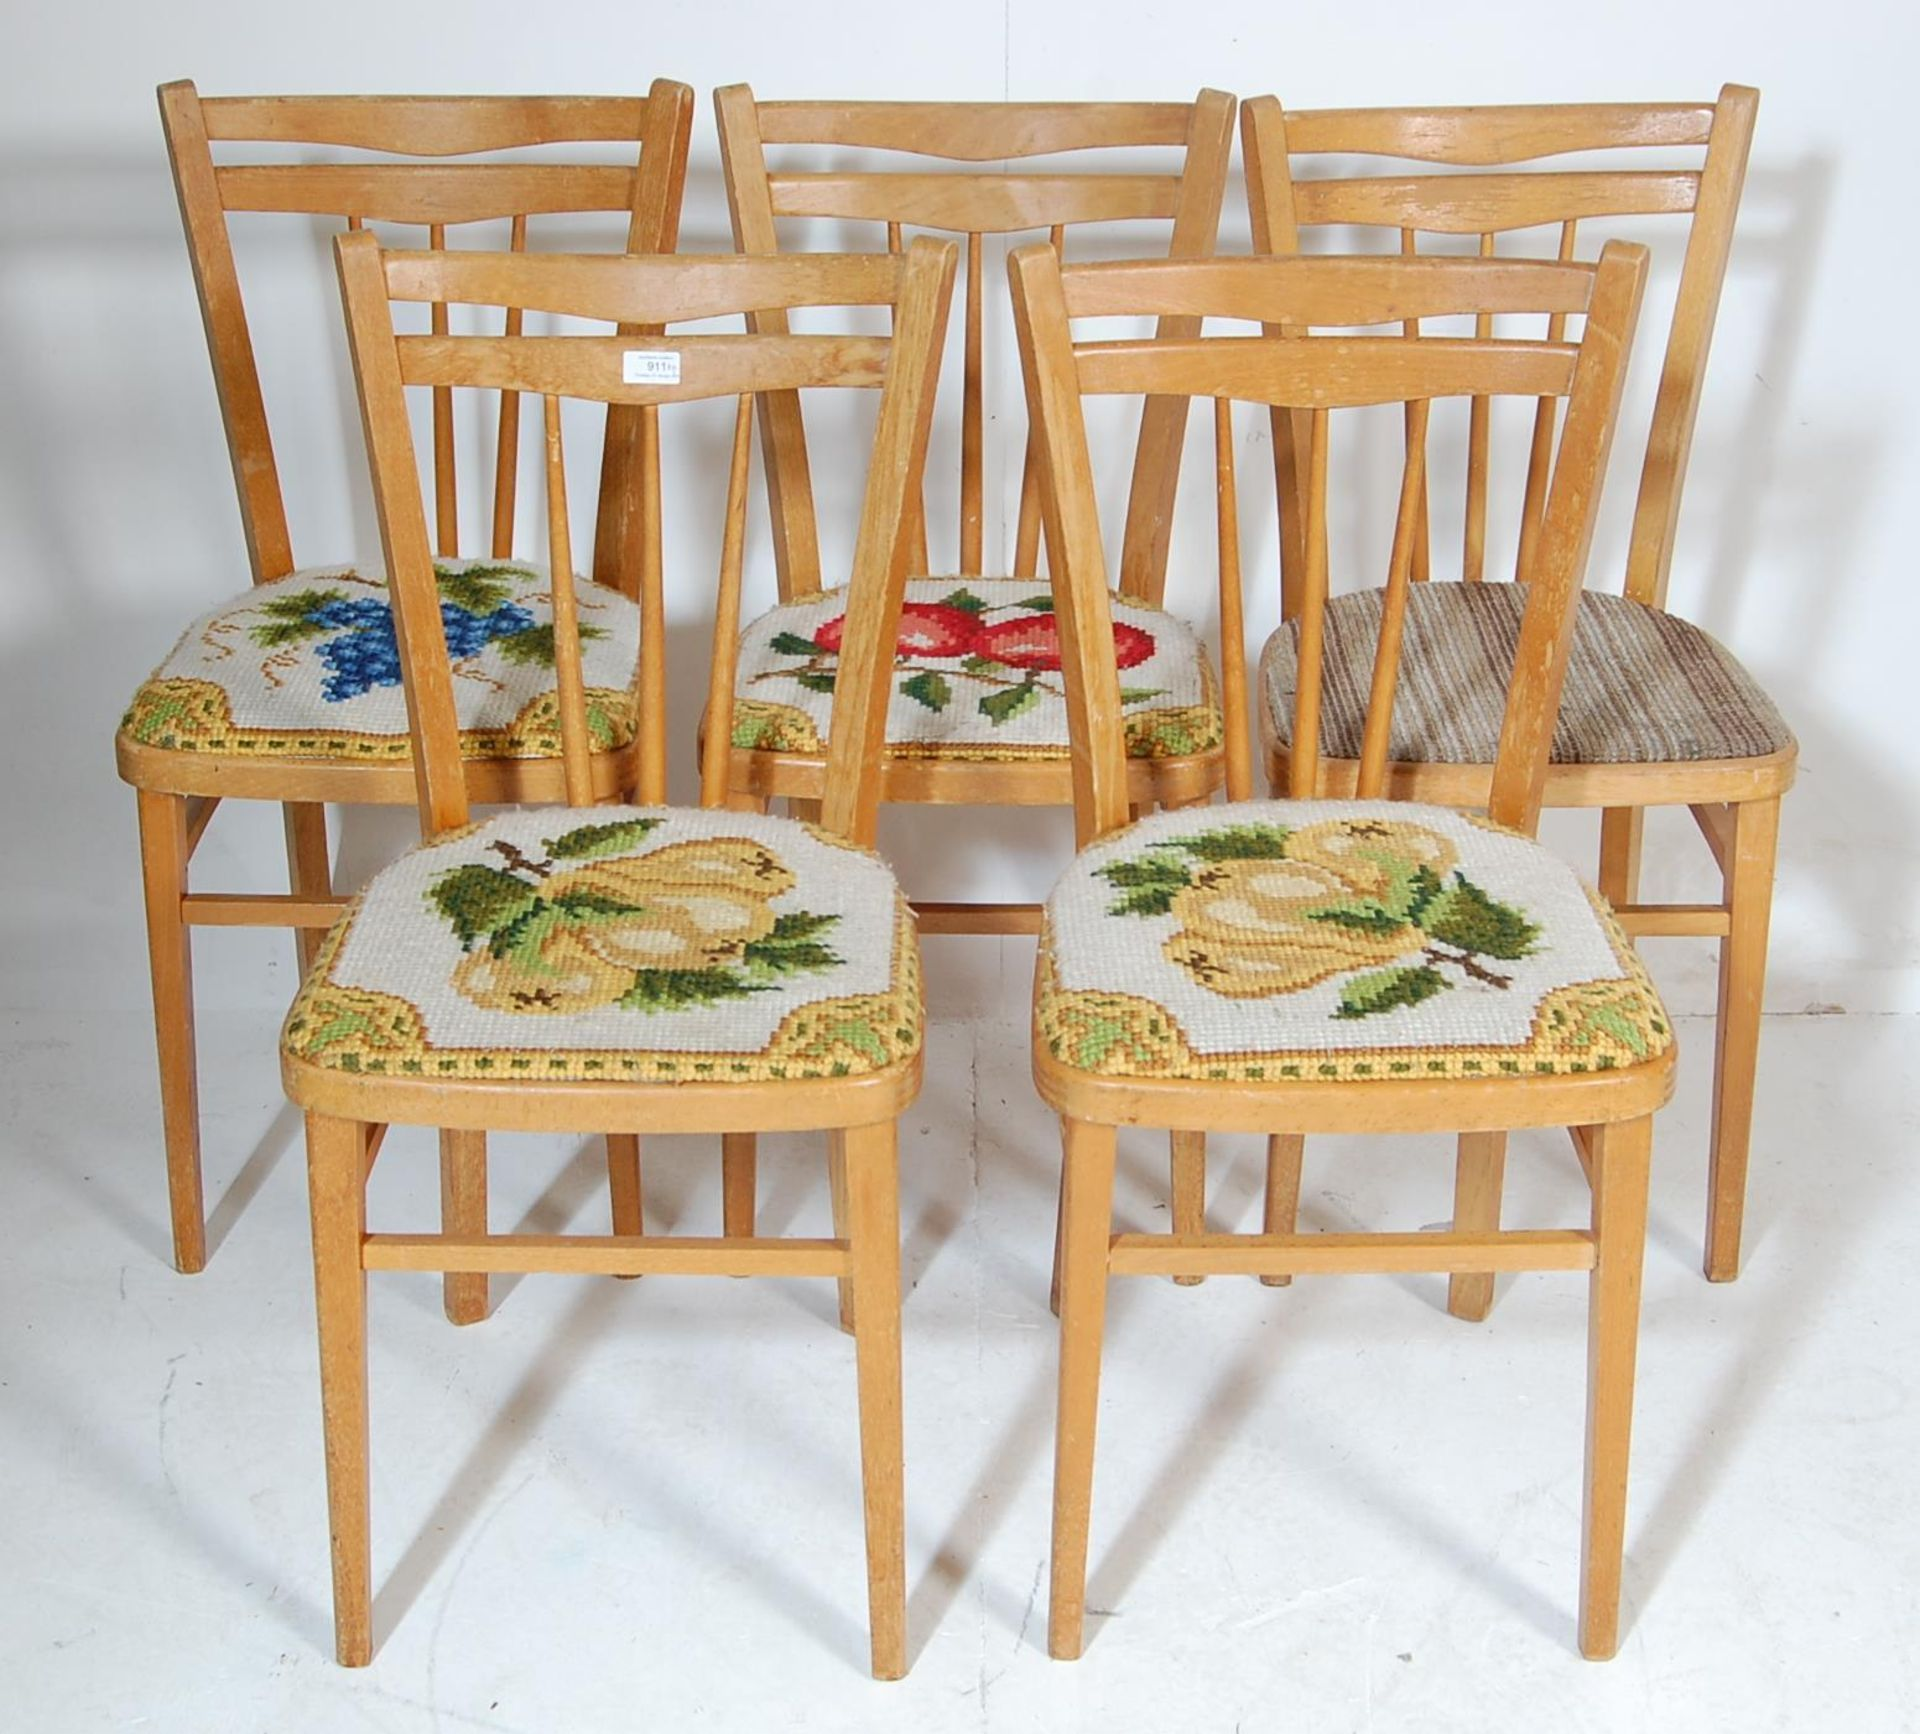 FIVE RETRO 20TH CENTURY DINING CHAIRS / KITCHEN CHAIRS - Image 2 of 5